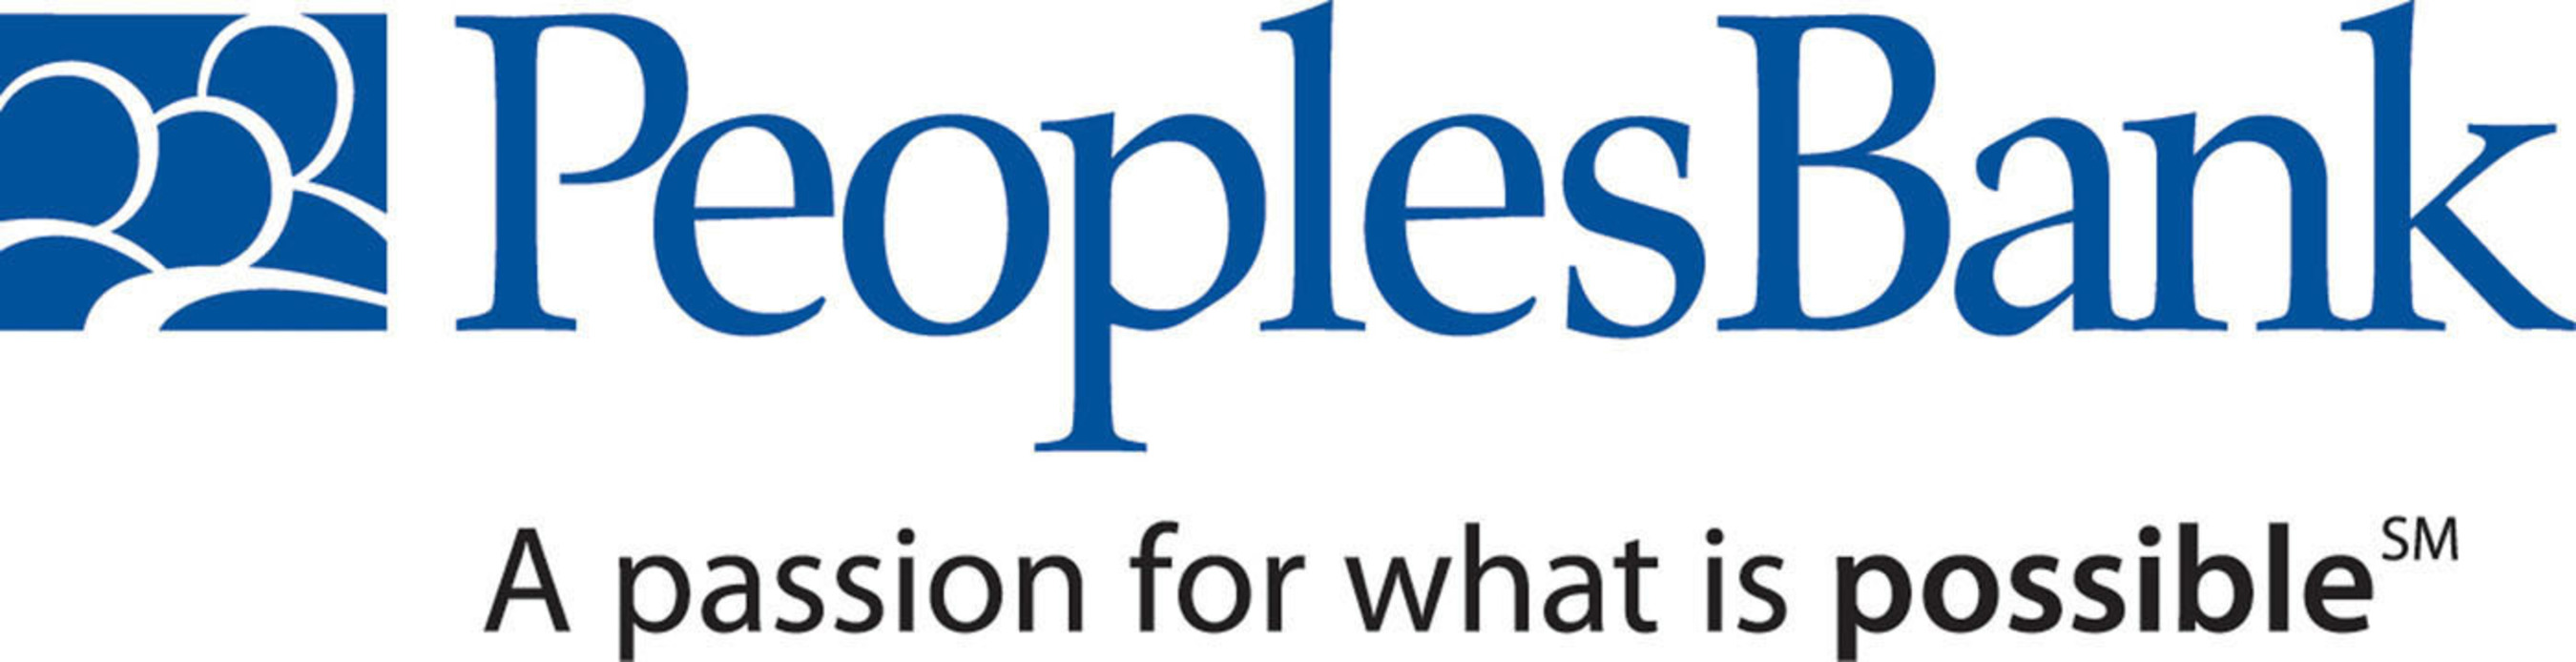 PeoplesBank - a passion for what is possible (sm).